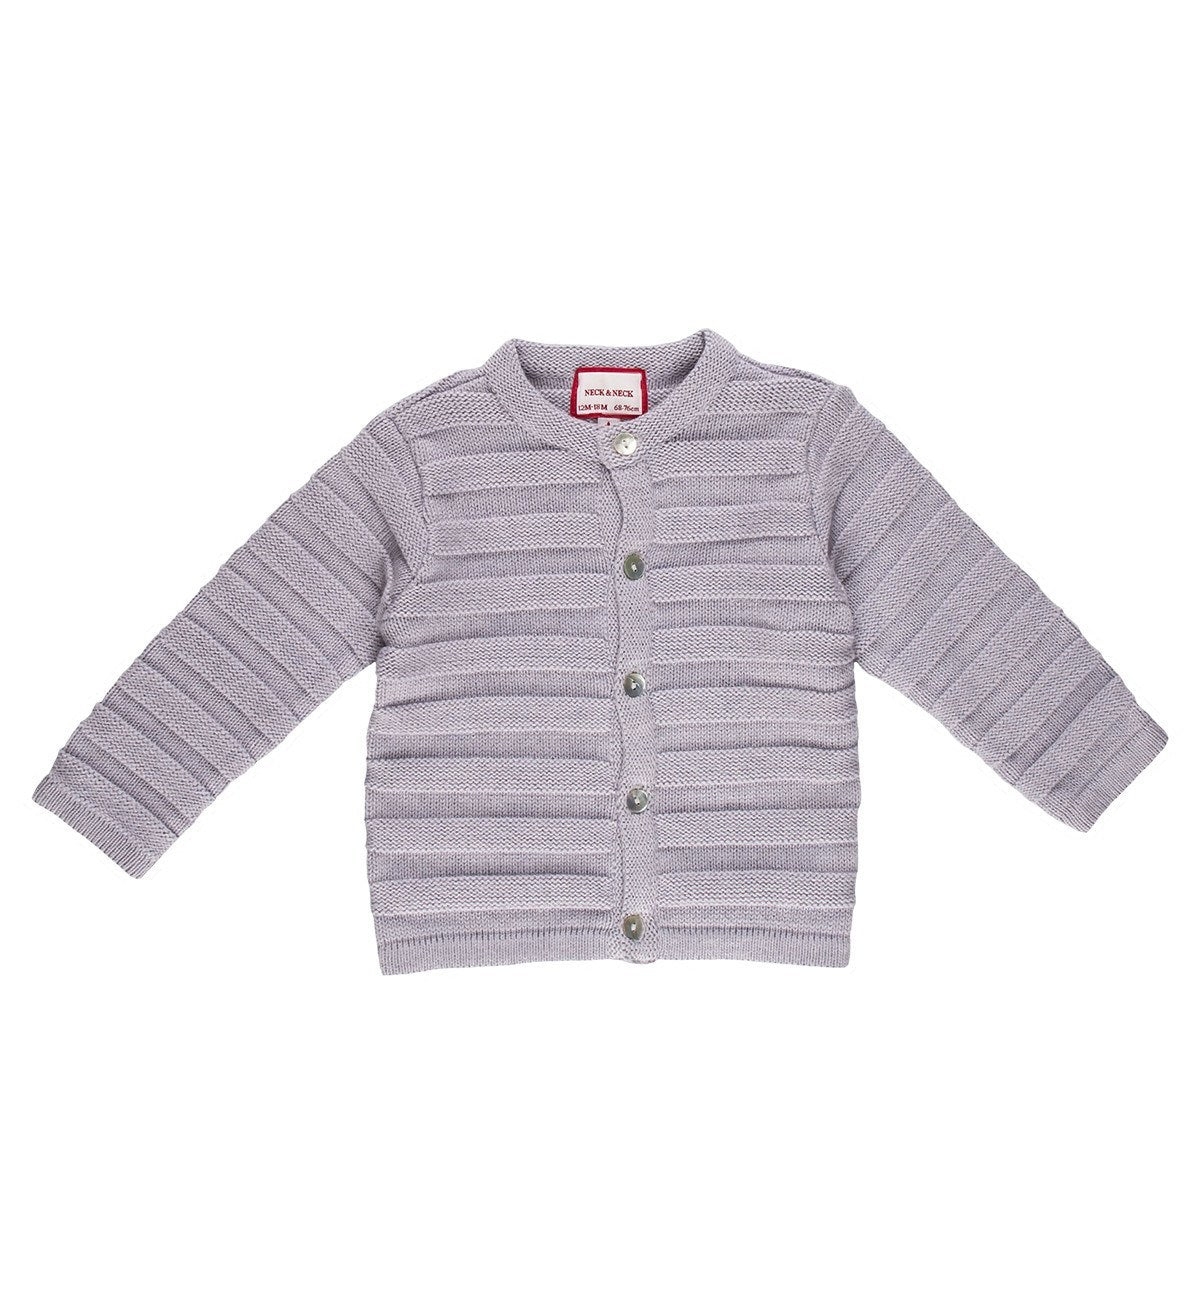 Spanish baby clothes | baby Cardigan & Coat | Pale lilac knitted cardigan |babymaC  - 1